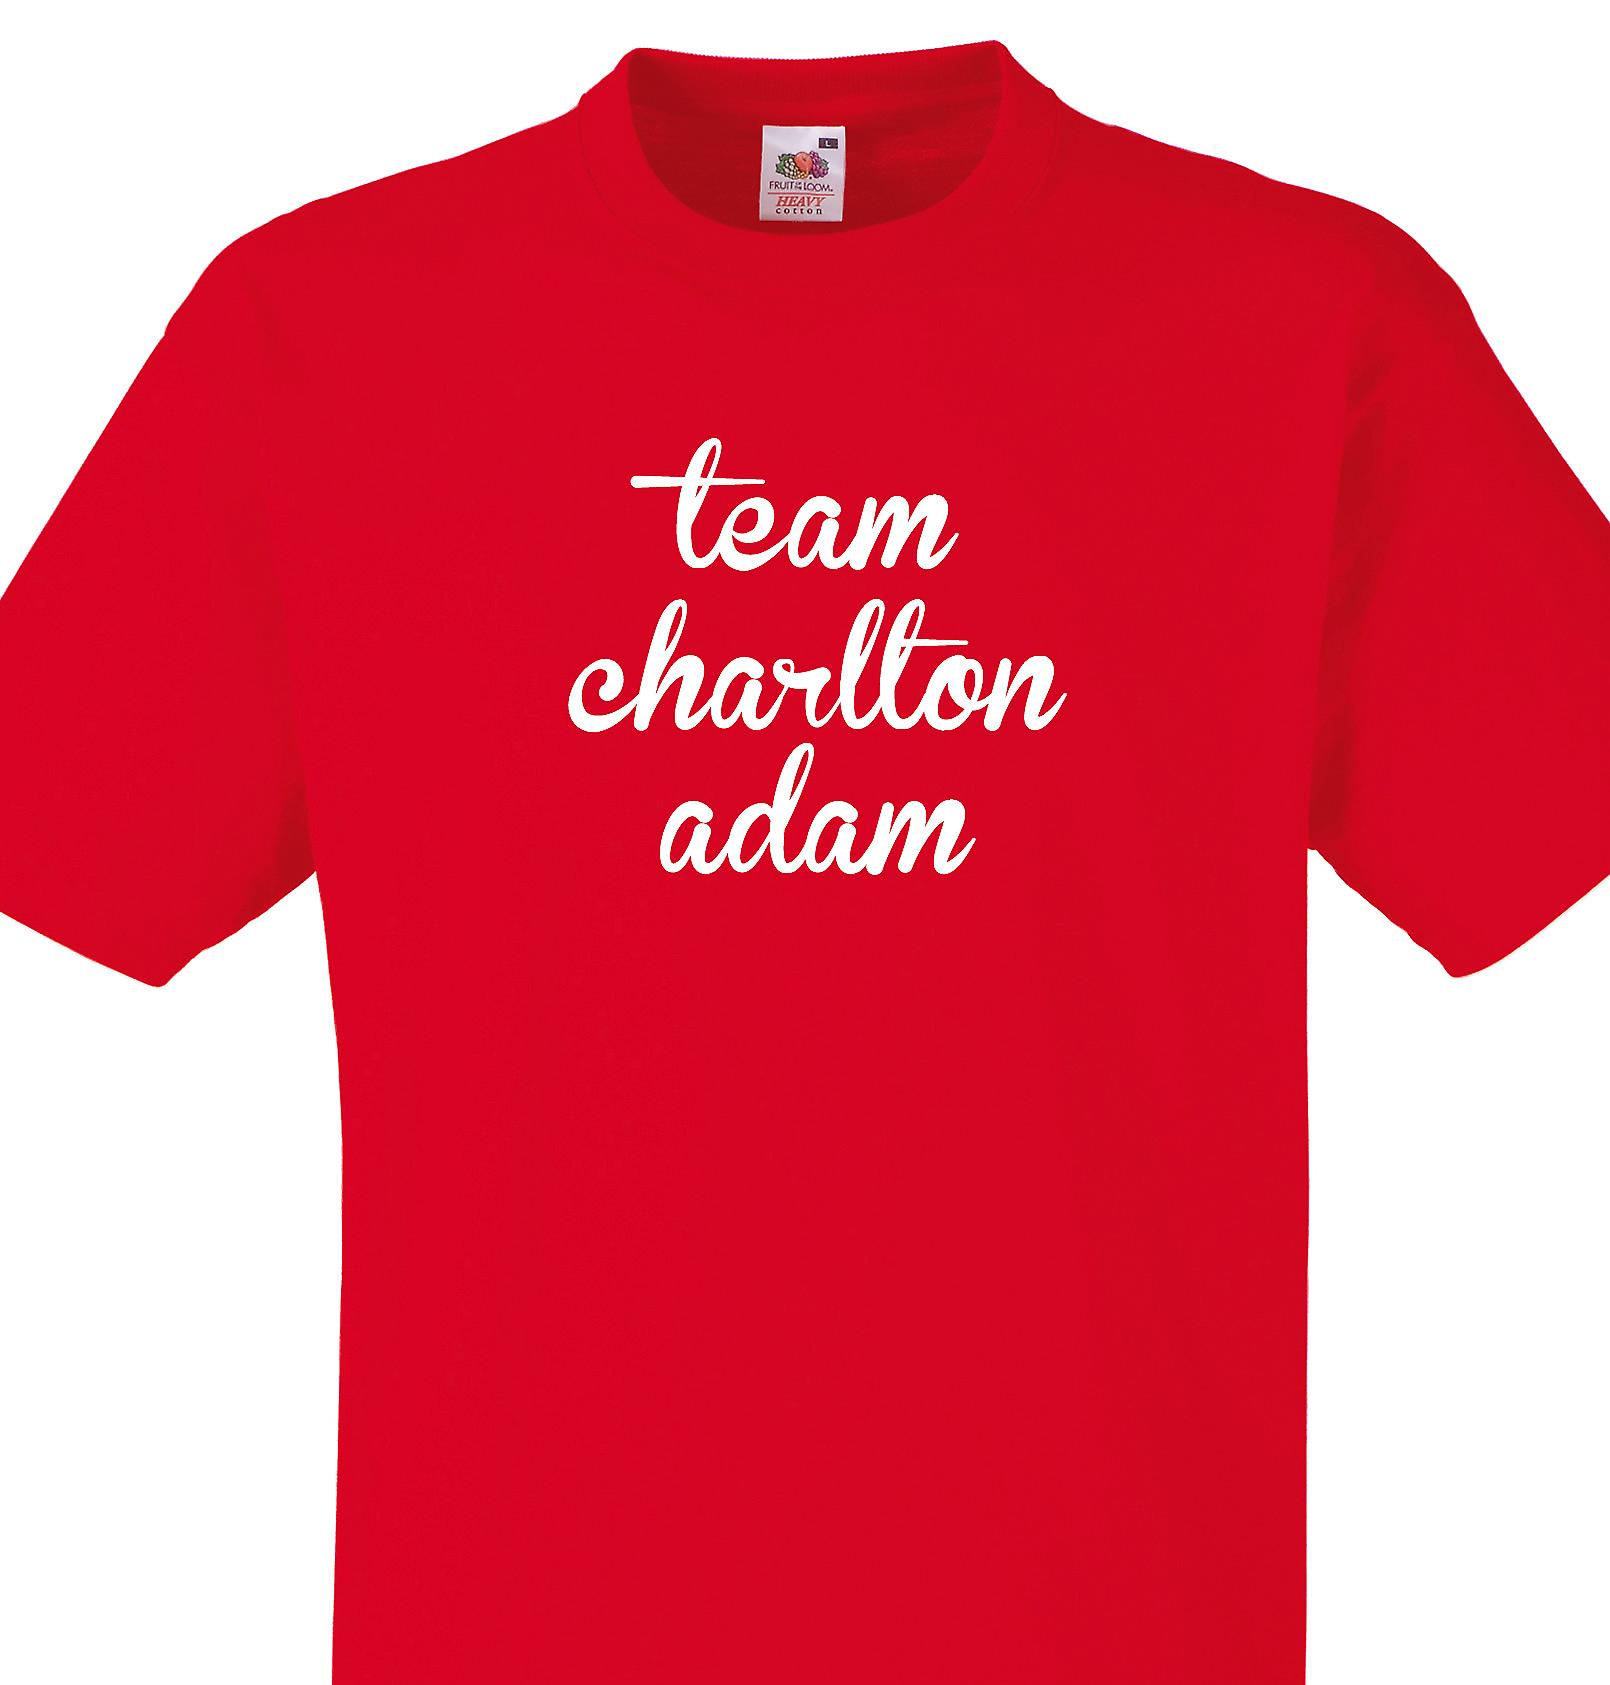 Team Charlton adam Red T shirt